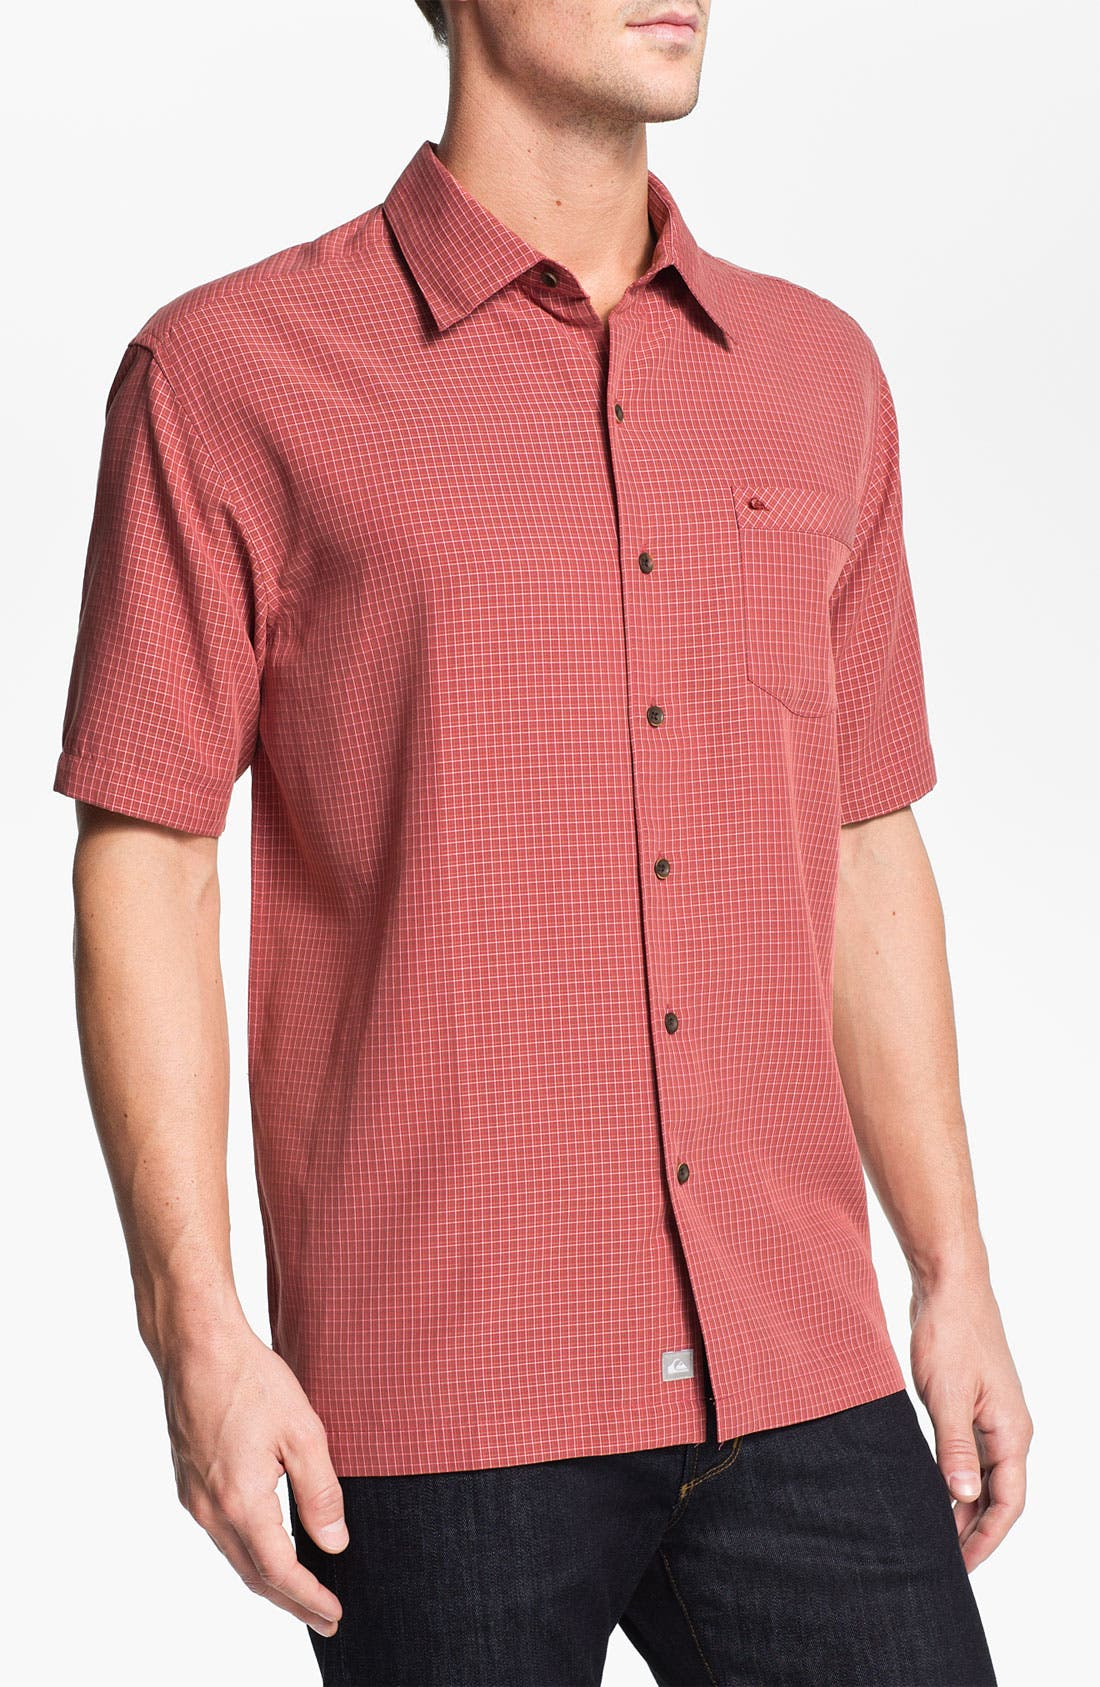 Alternate Image 1 Selected - Quiksilver 'Clearview Cove' Woven Shirt